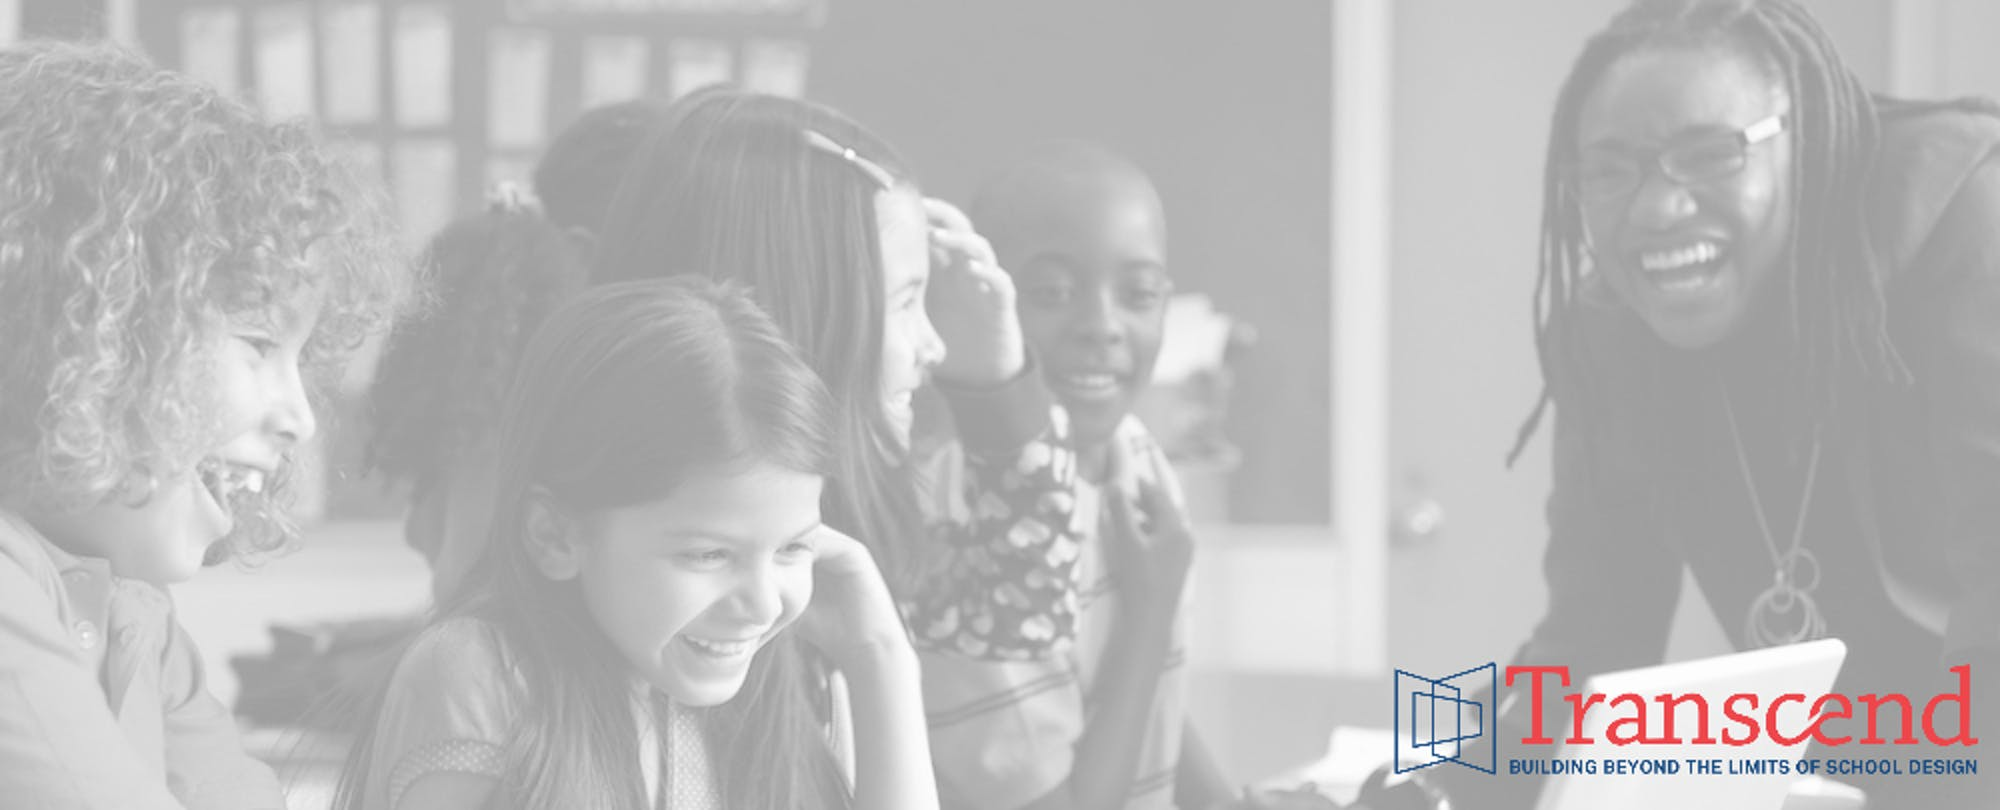 How Transcend Education Partners with School Leaders to Build New Models